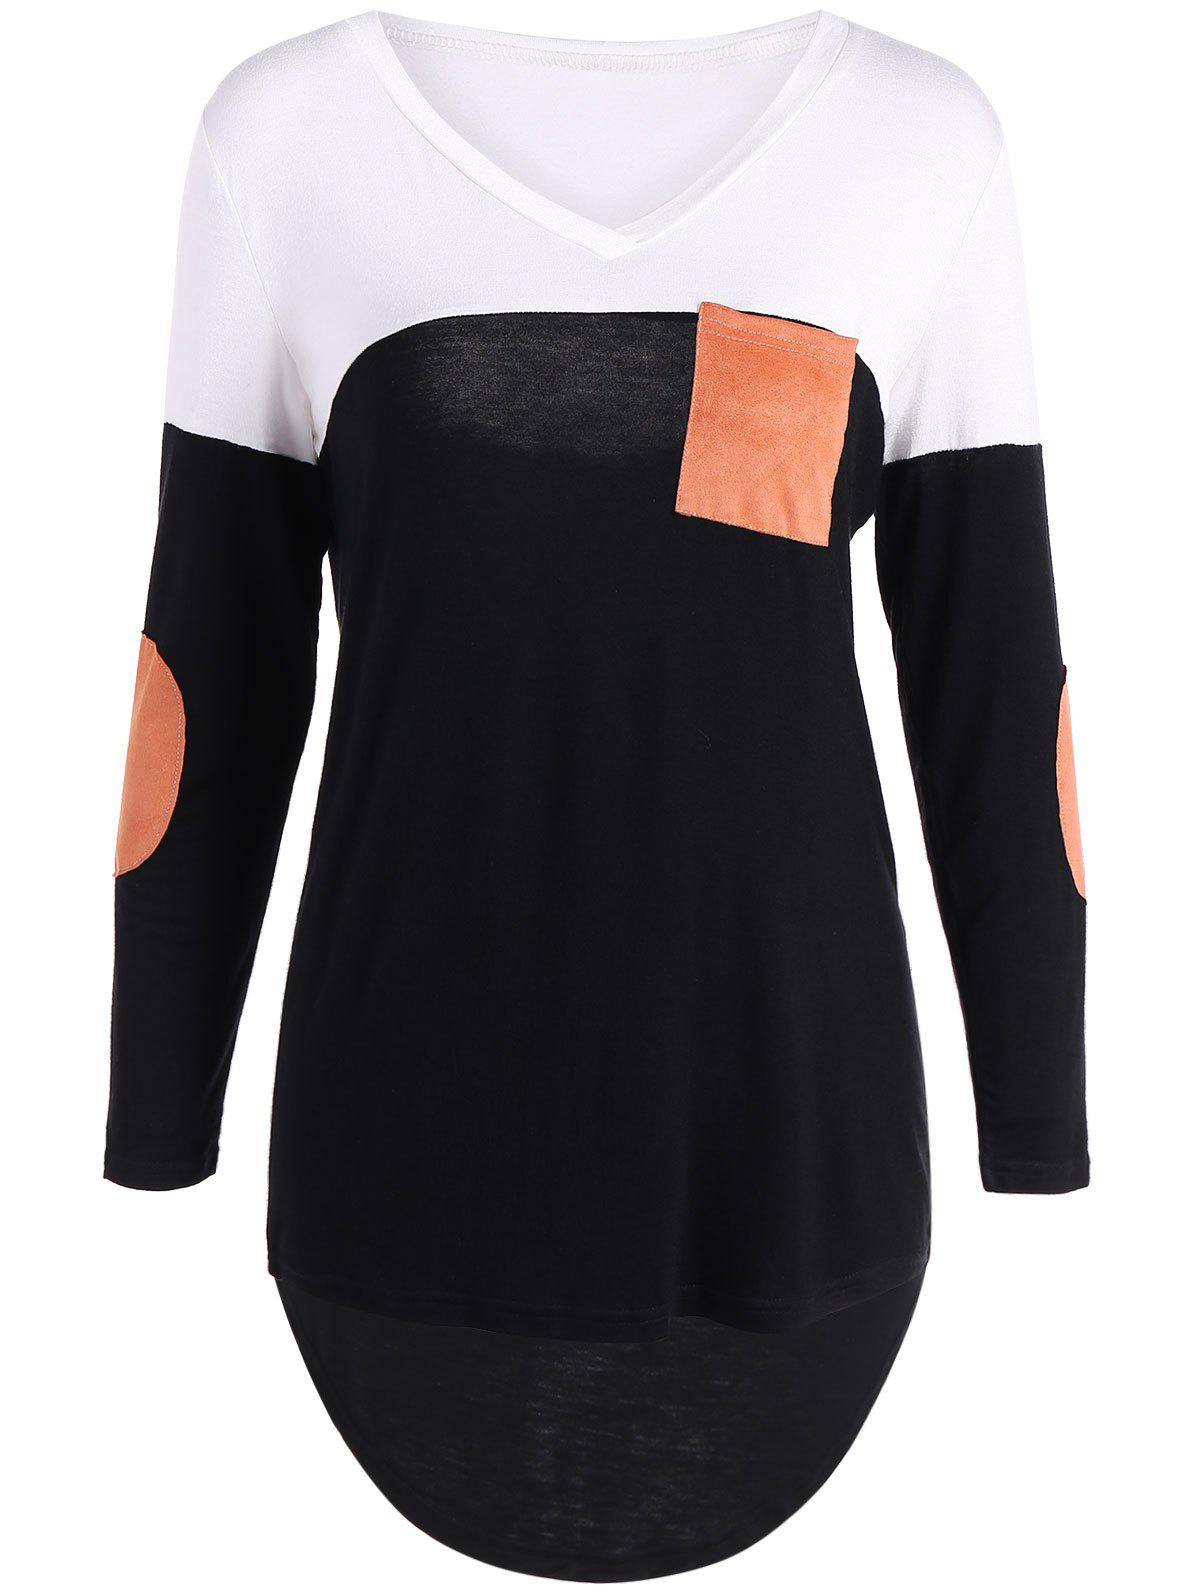 Patchy Sleeve High Low Hem T-ShirtWOMEN<br><br>Size: L; Color: BLACK; Material: Cotton Blends; Sleeve Length: Full; Collar: V-Neck; Style: Casual; Embellishment: Front Pocket; Pattern Type: Patchwork; Season: Fall,Spring,Winter; Elasticity: Elastic; Weight: 0.300kg; Package Contents: 1 x T-Shirt;